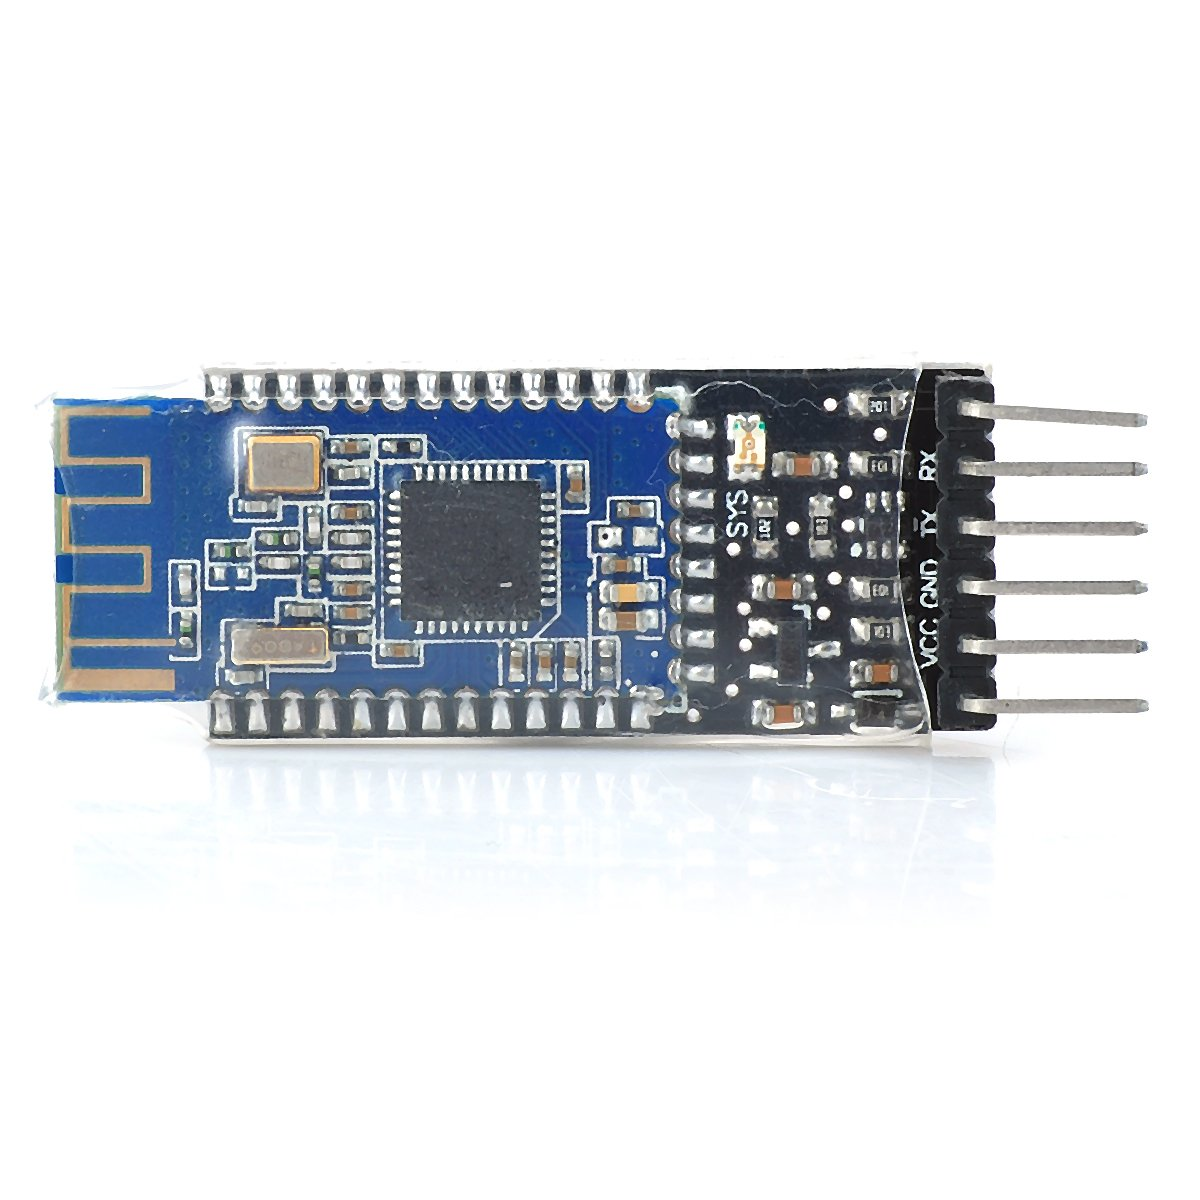 IDS Home 6Pin Bluetooth 4.0 Serial Port Module with Logic Level Translator